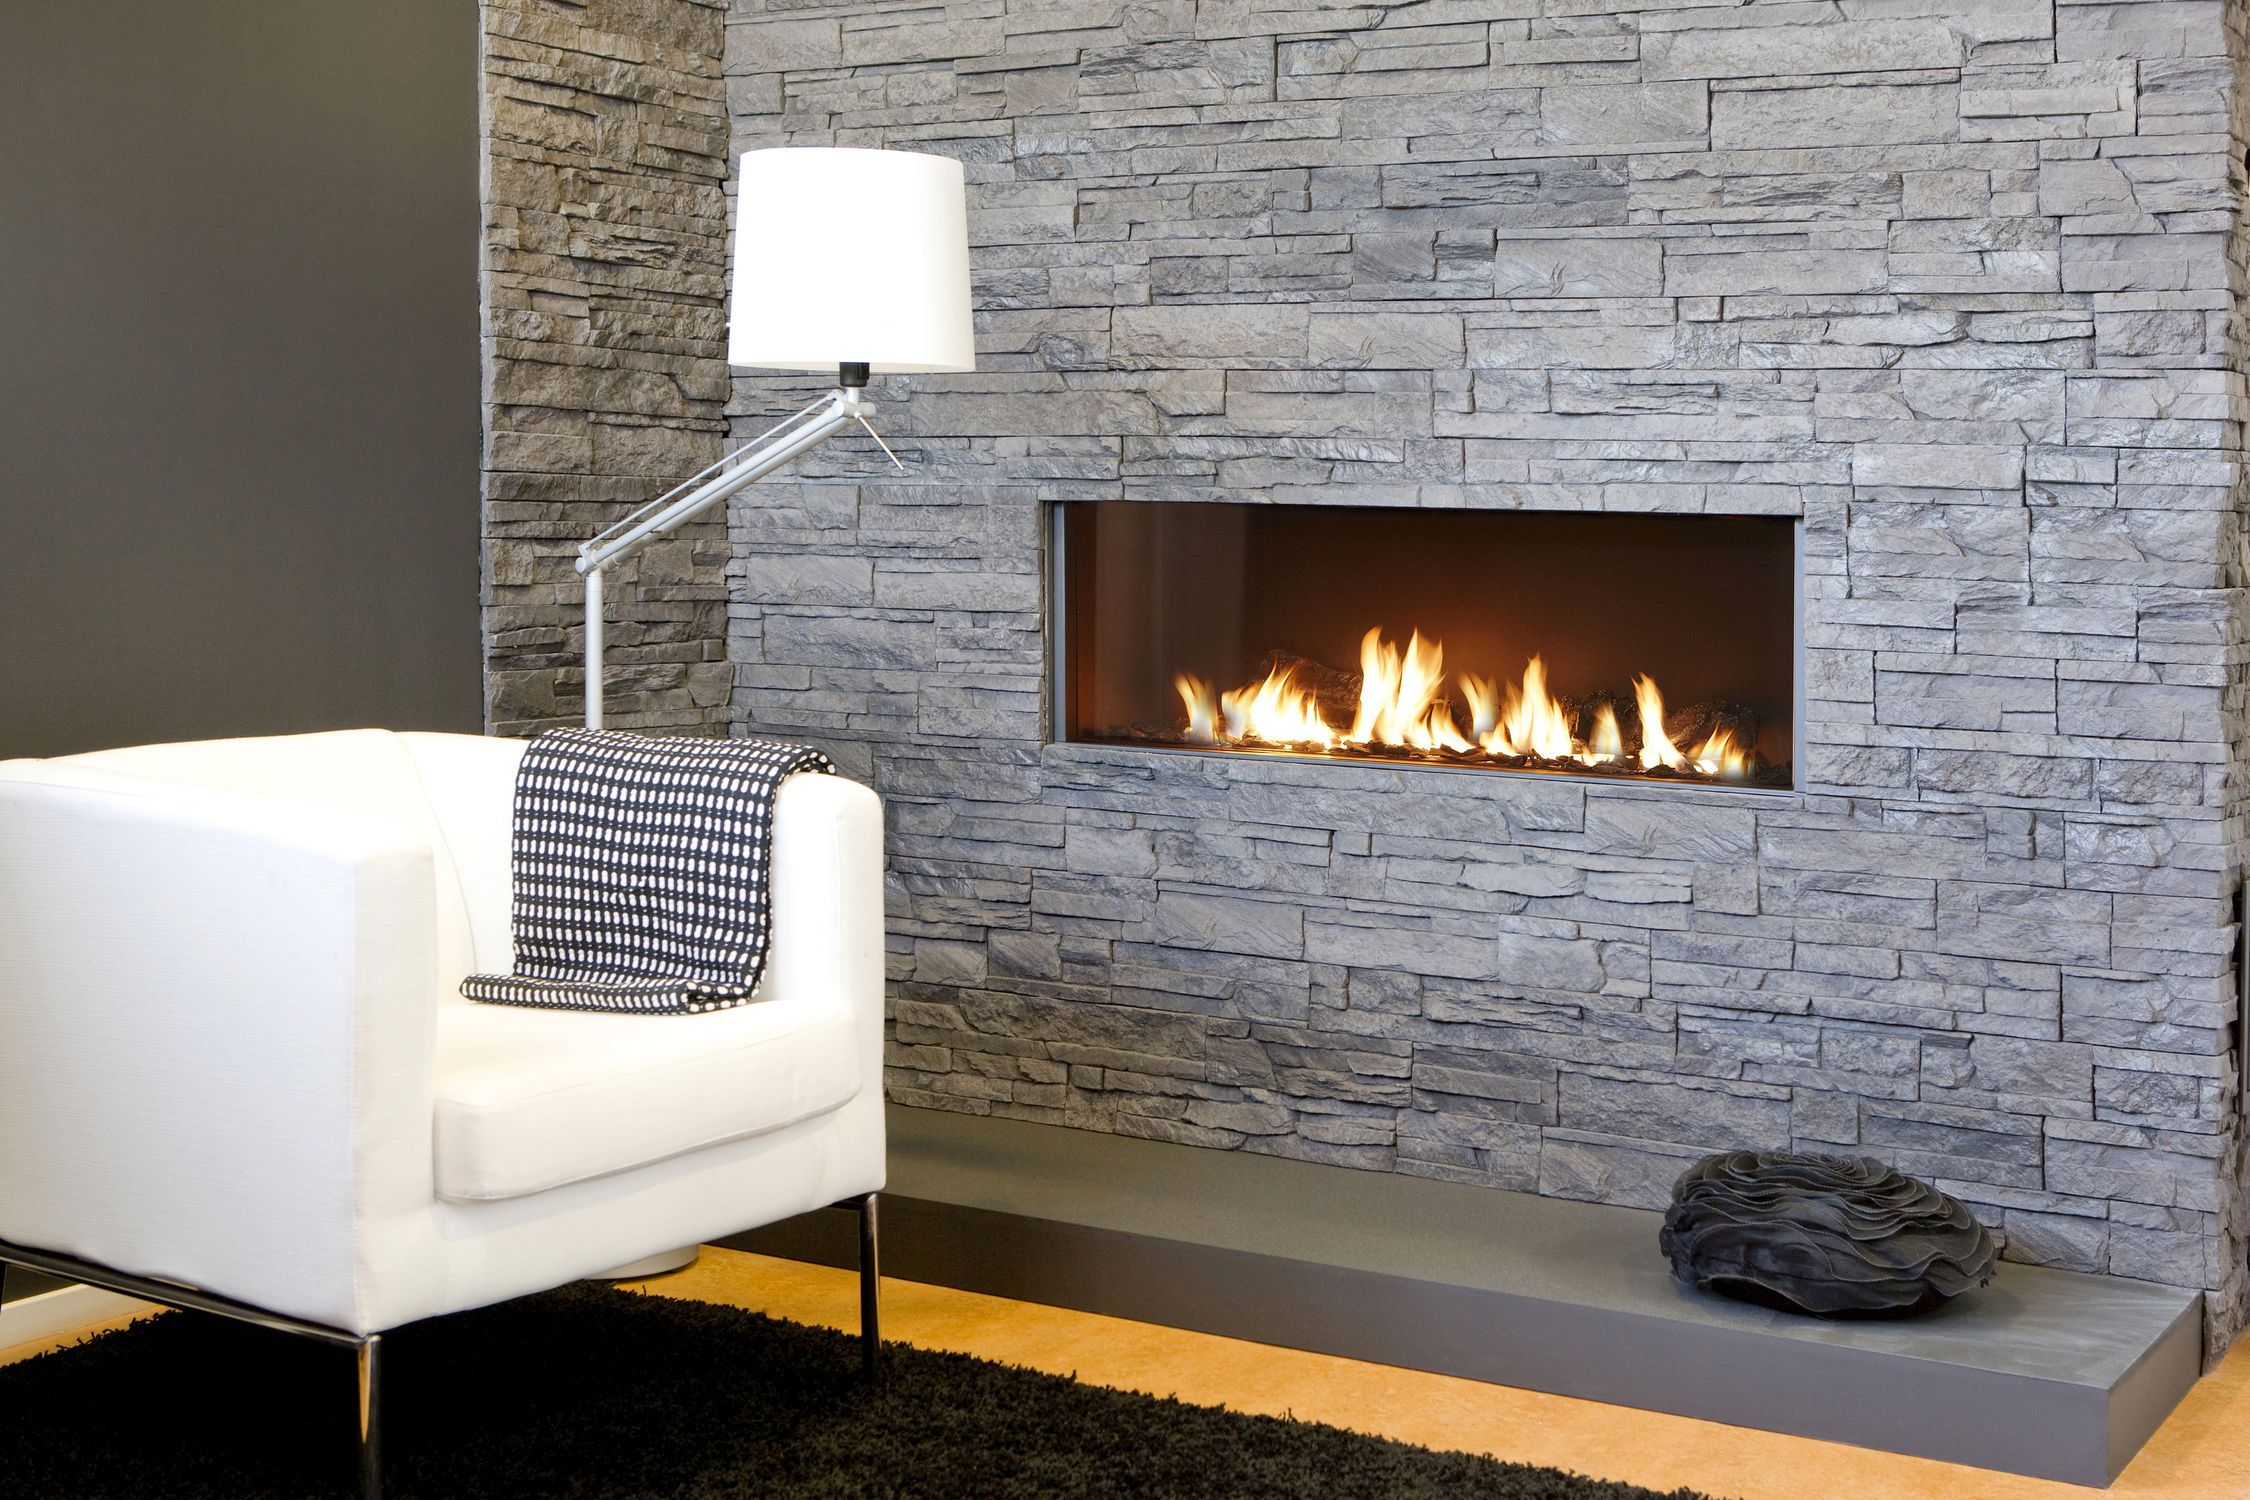 Design Modern Gas Fireplace contemporary gas fireplace designs built in modern design image collection gas